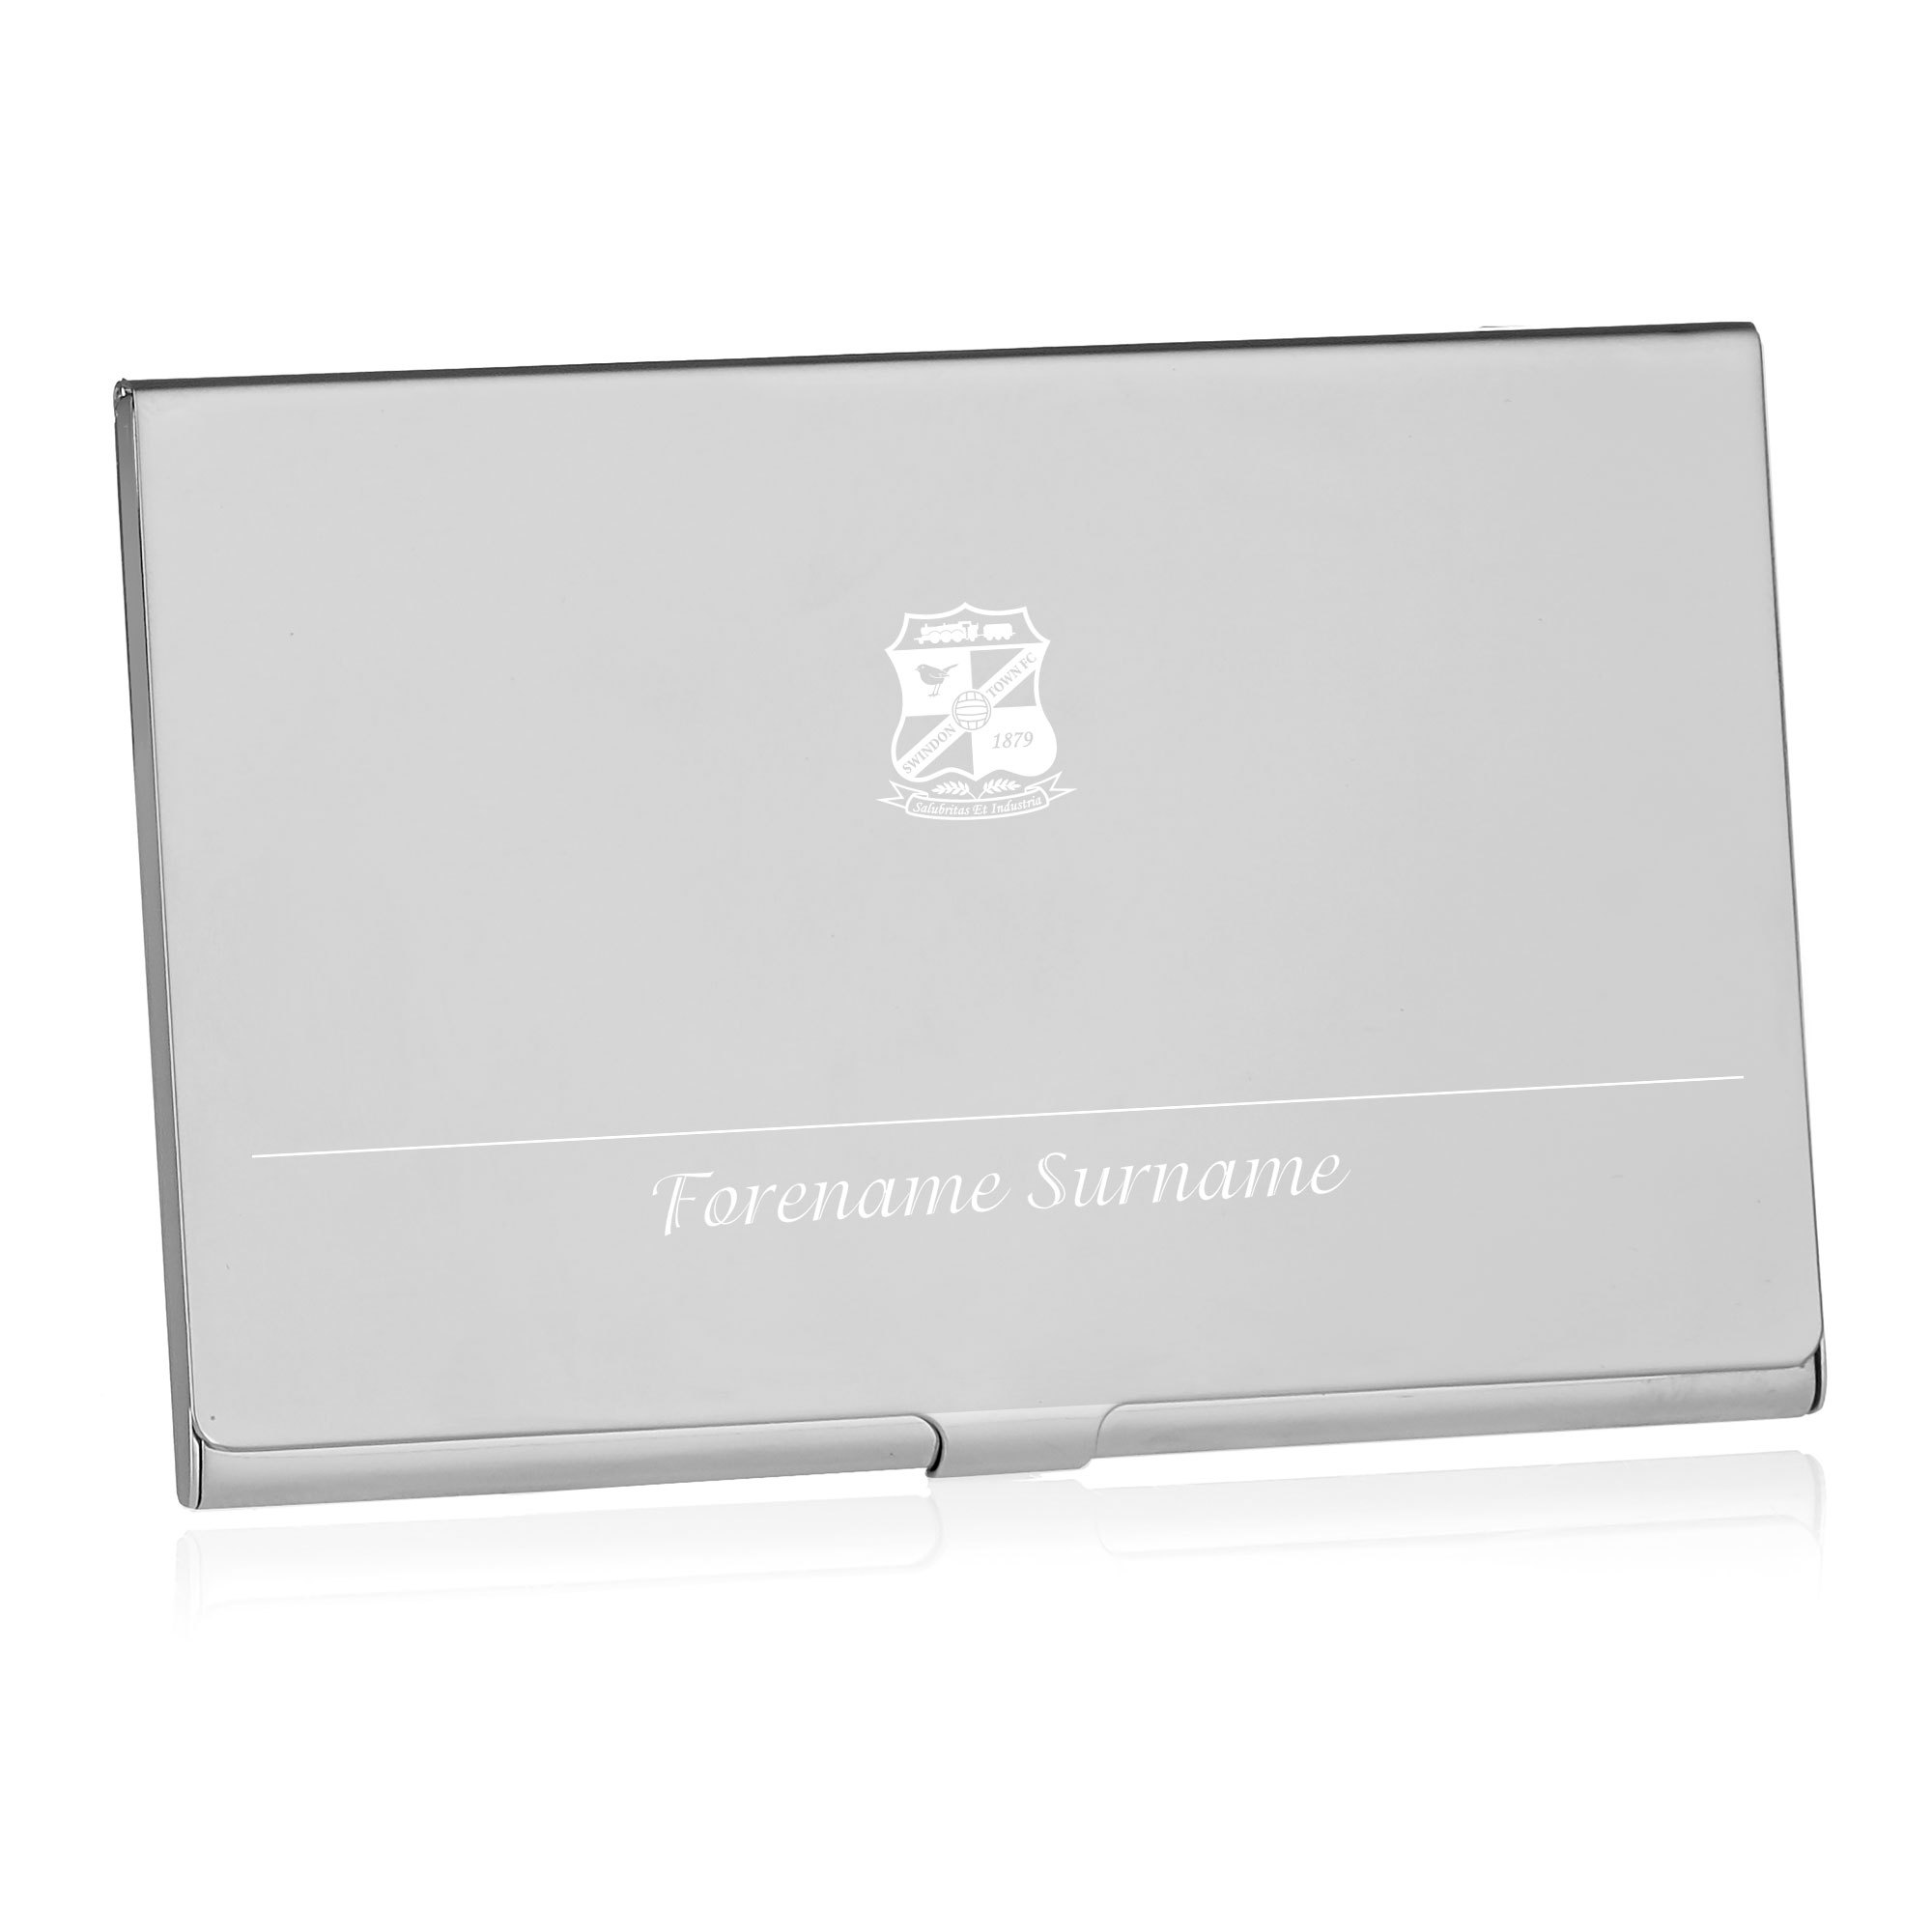 Swindon Town Executive Business Card Holder